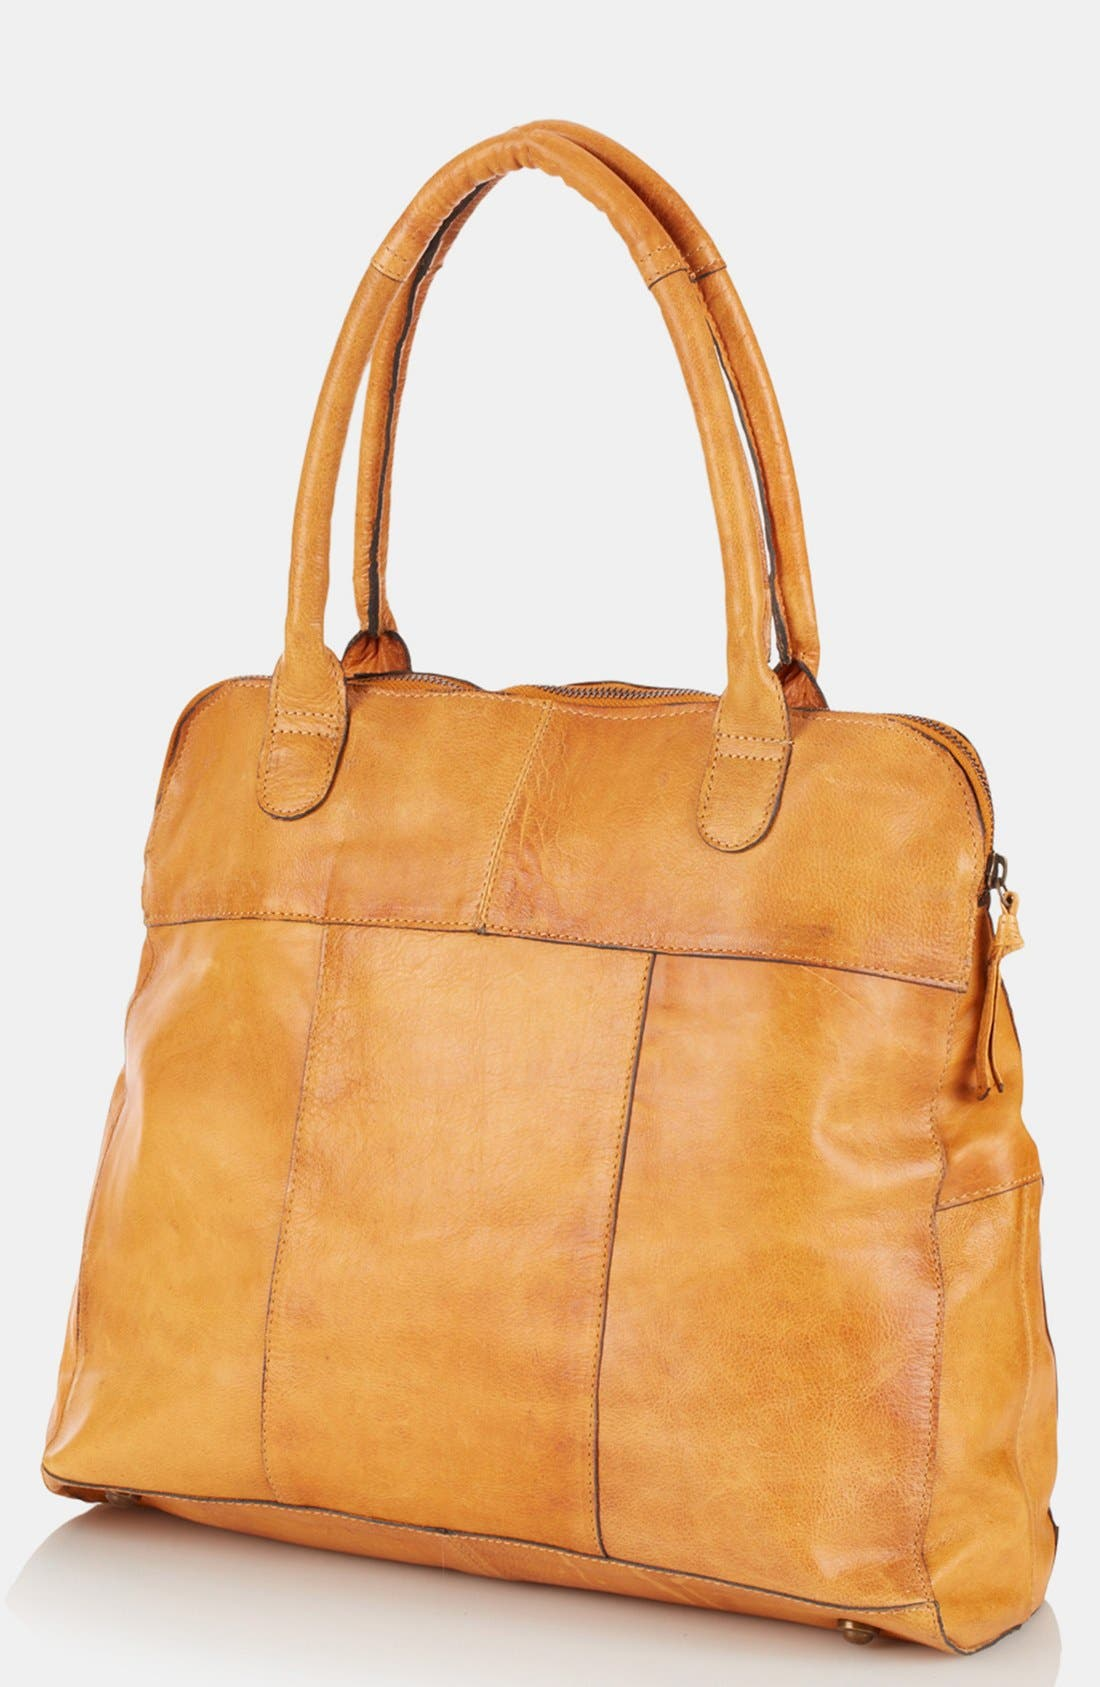 Alternate Image 1 Selected - Topshop 'Triangle Lock' Leather Satchel